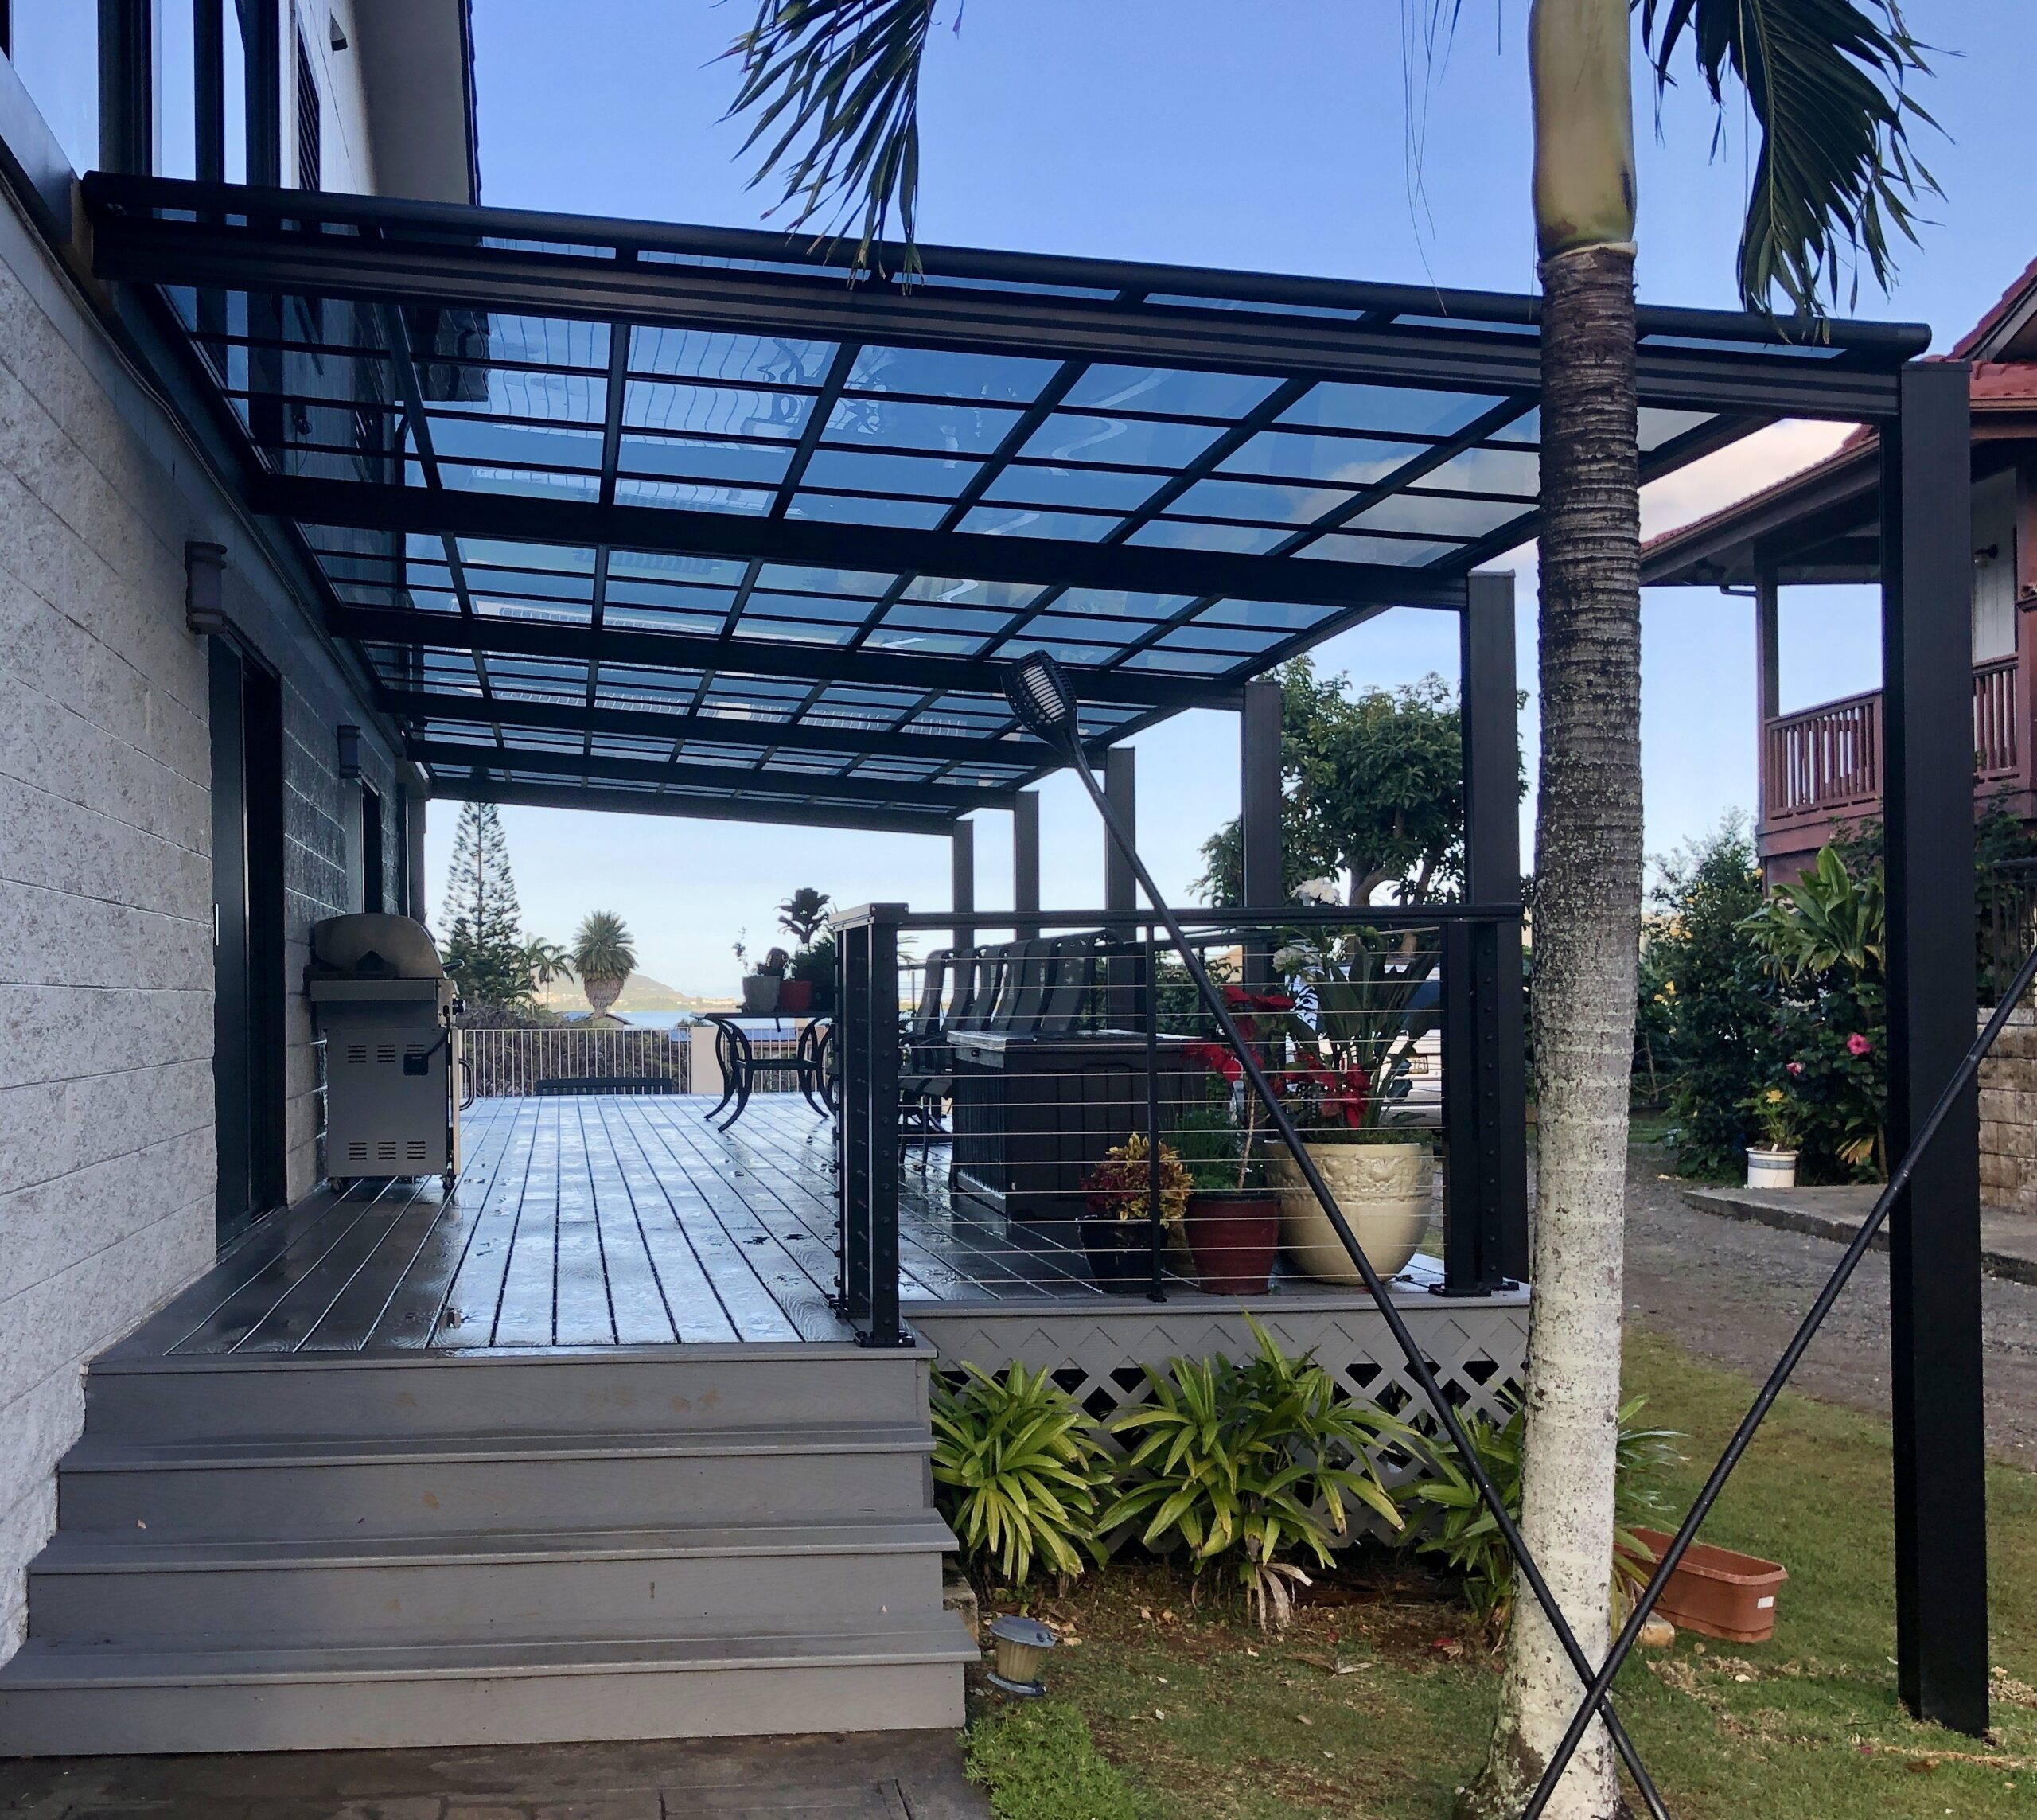 Aluminum Patio Cover, Dark Anodized Aluminum profile with the smoke gray polycarbonate panel.